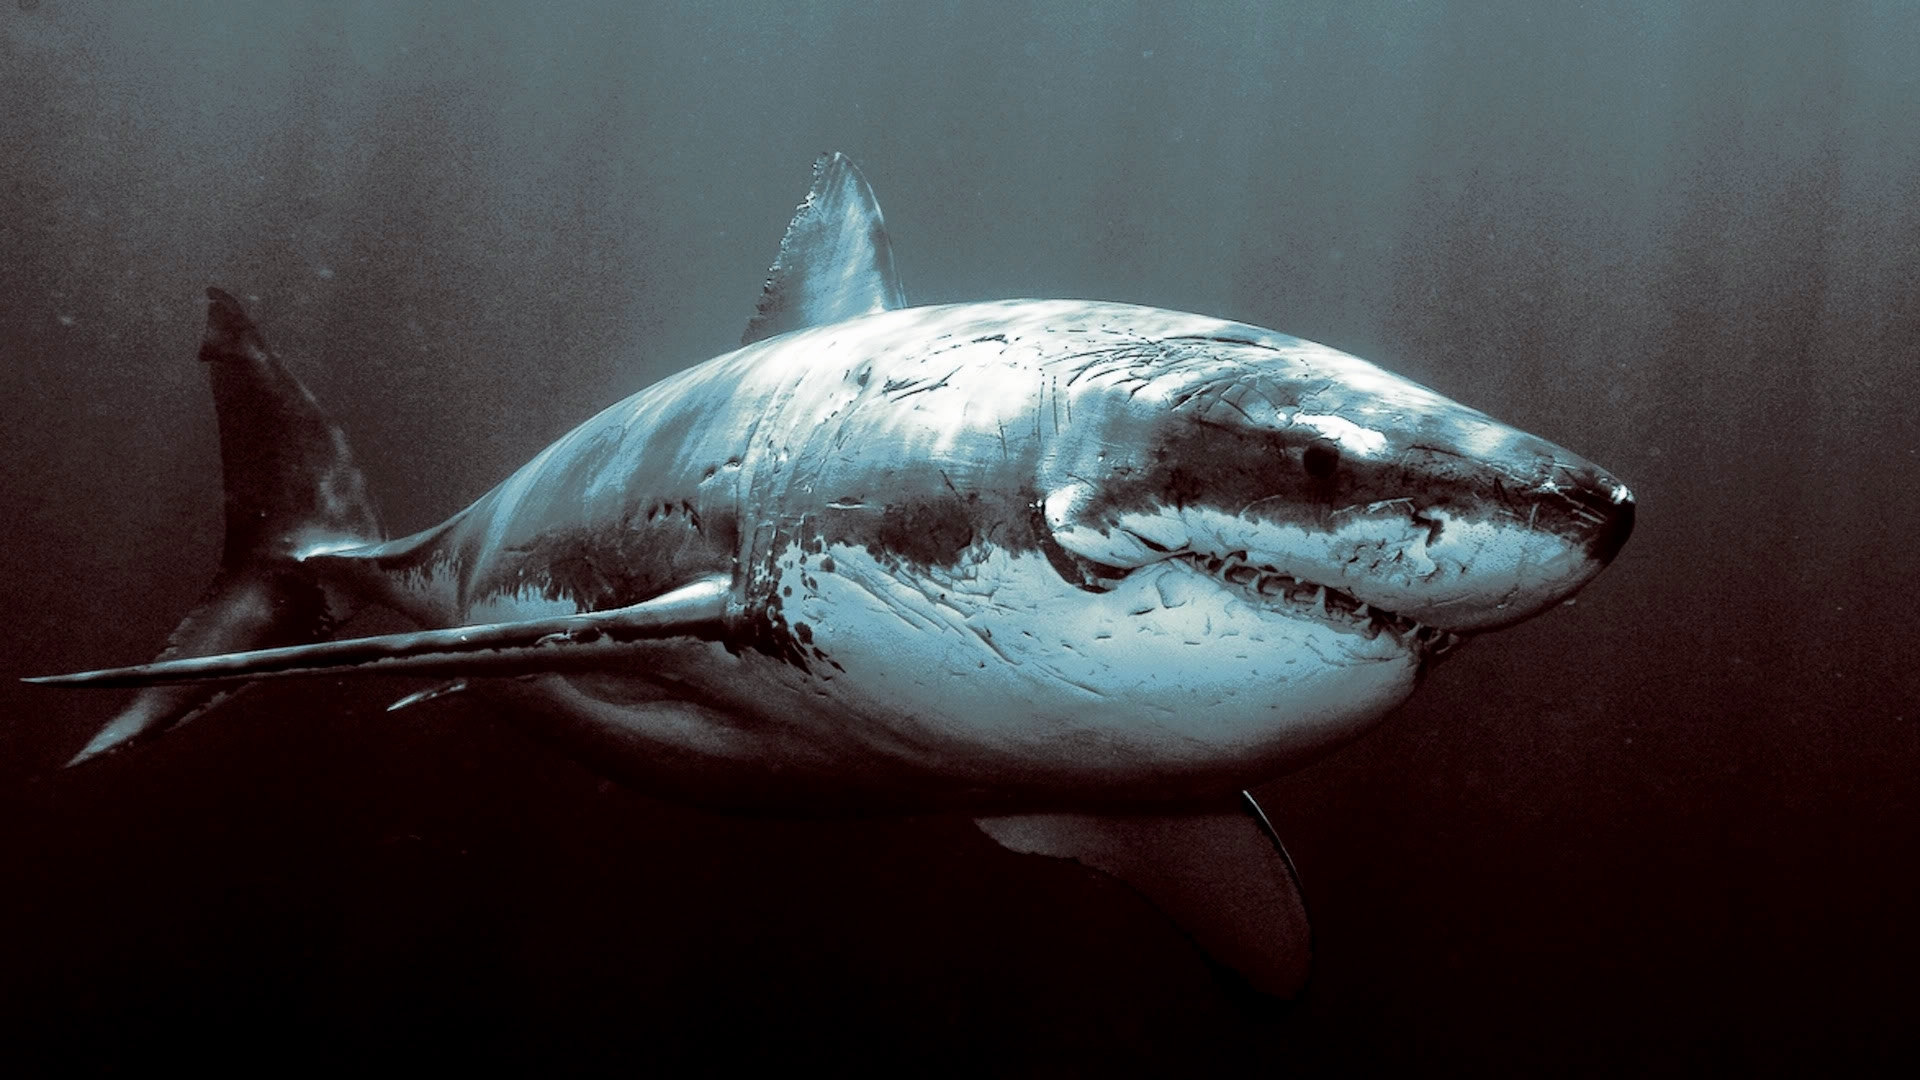 28044 download wallpaper Animals, Sea, Sharks screensavers and pictures for free